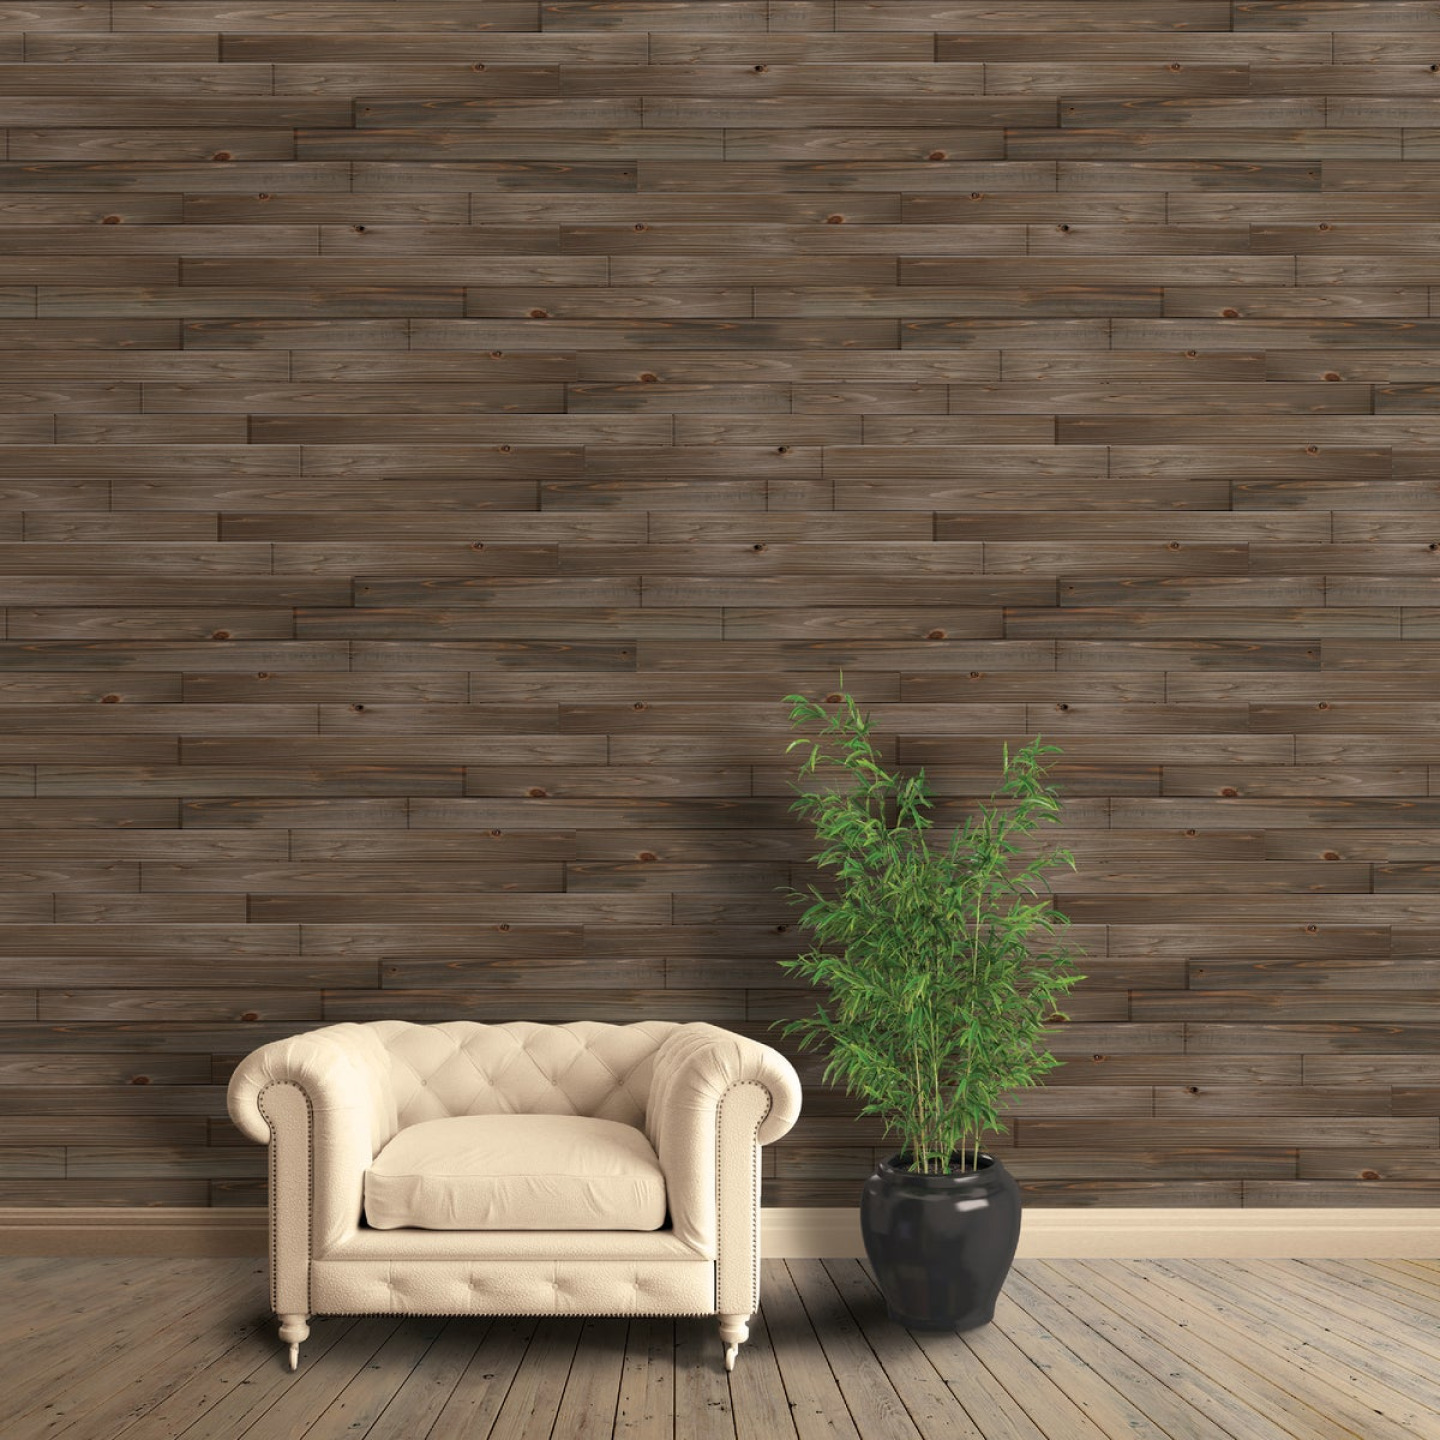 Global Product Sourcing 3-1/2 In. W. x 1/4 In. Thick Solid Wood Gray Reclaimed Wood Wall Plank Image 2